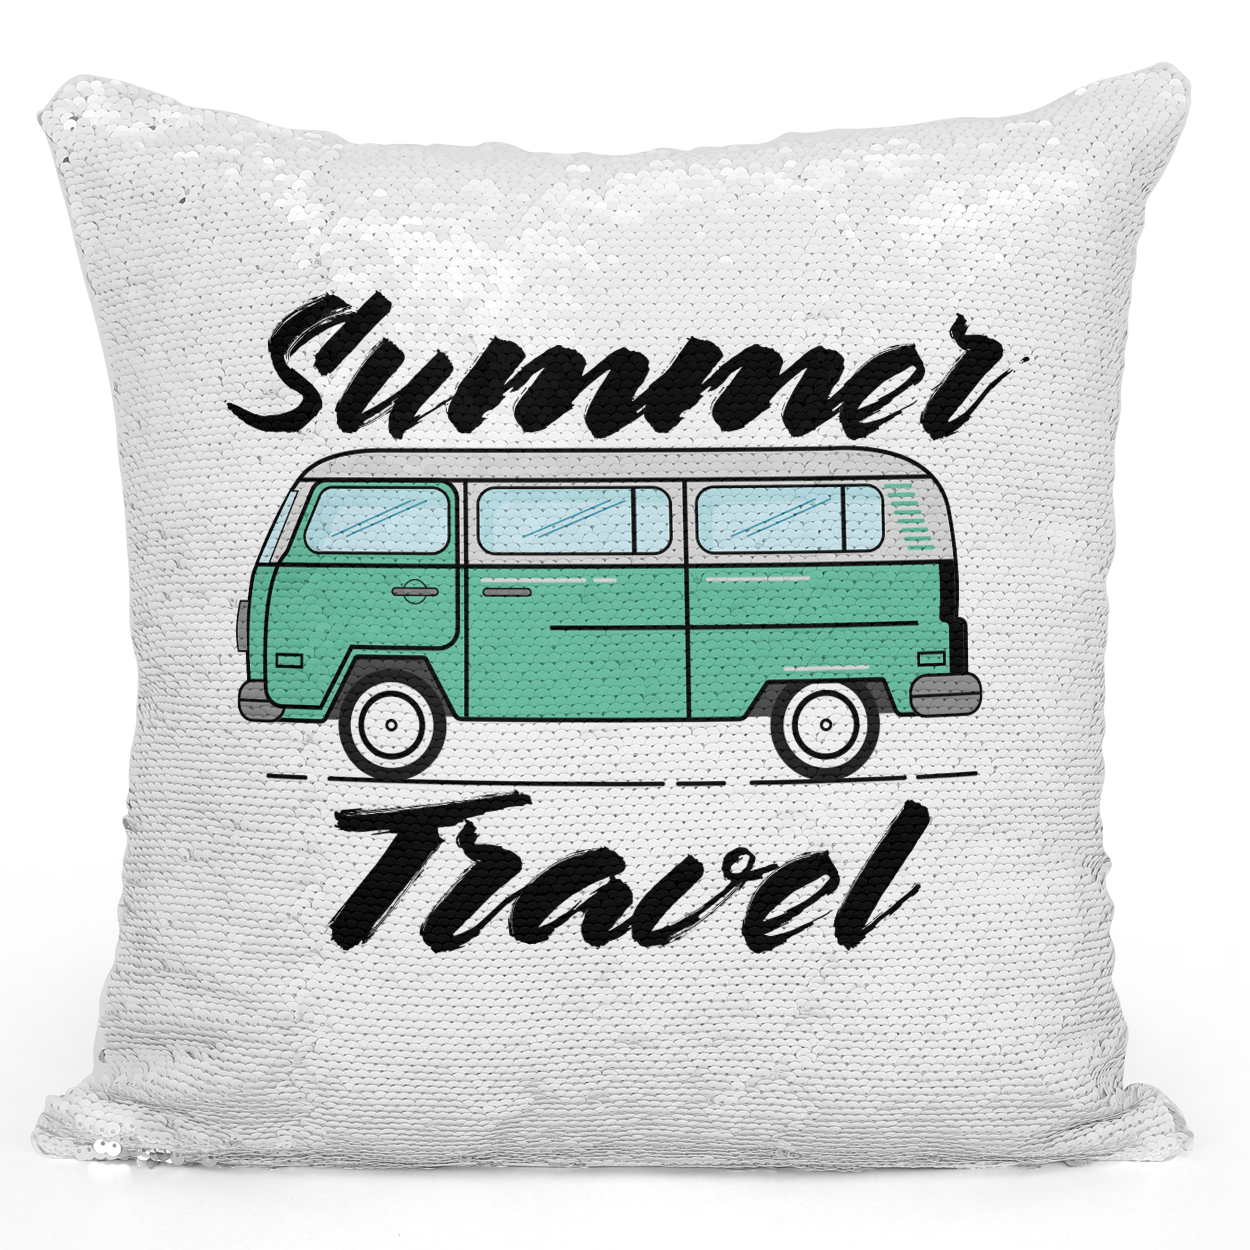 Sequin Pillow Magic Mermaid Throw Pillow Summer Travel Green Van Pillow Summer Fun Adventures - High Quality White 16 x 16 inch Square Home Office Decor Accent Pillow Loud Universe